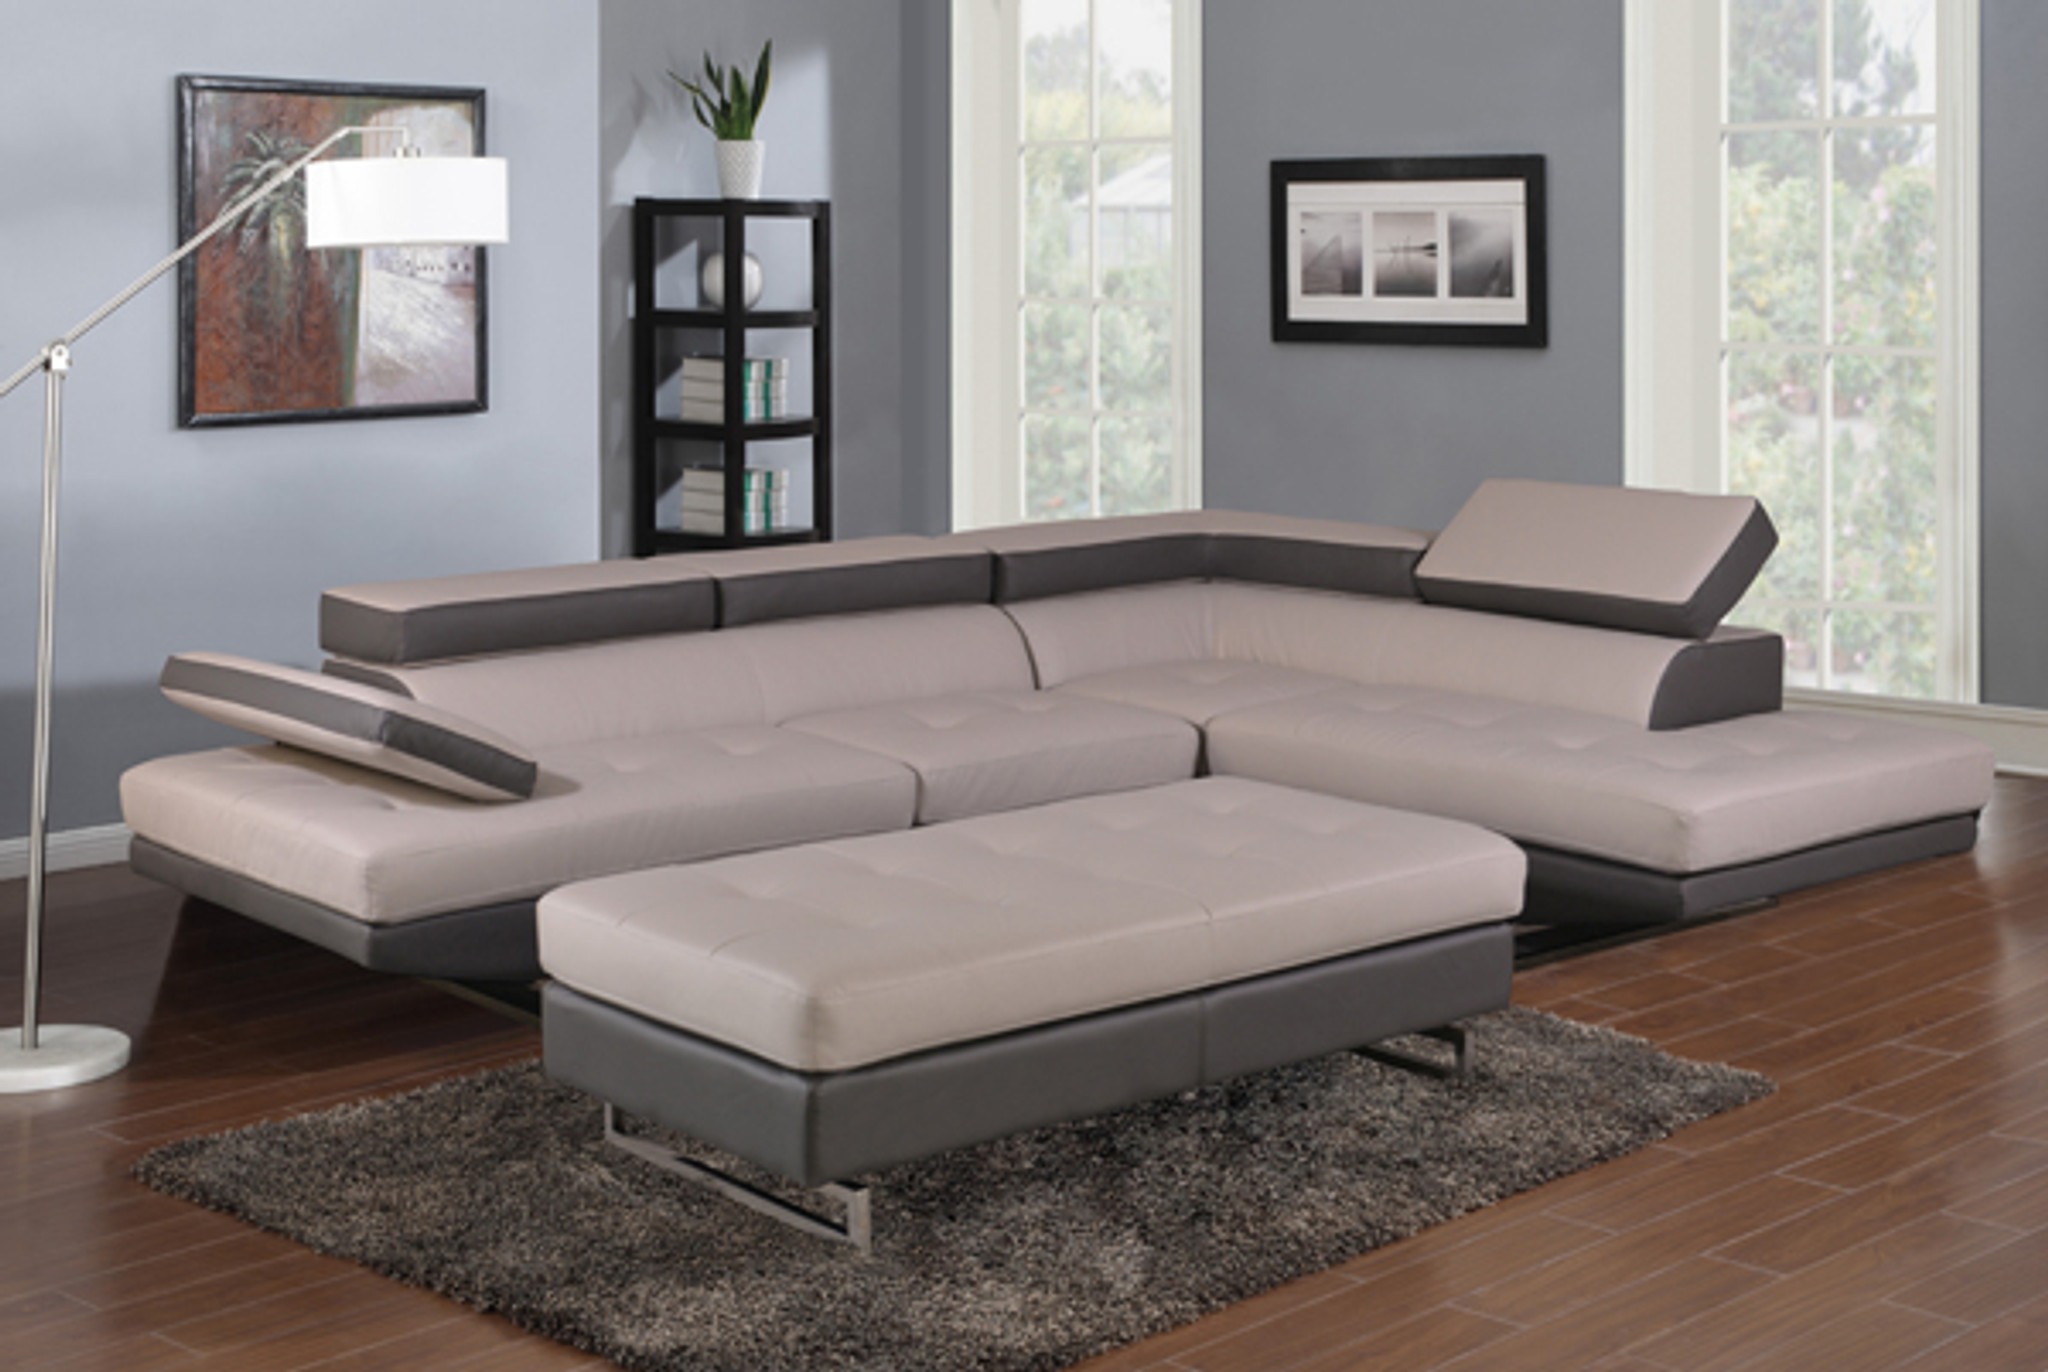 fashionable sectional in light gray dark gray leather